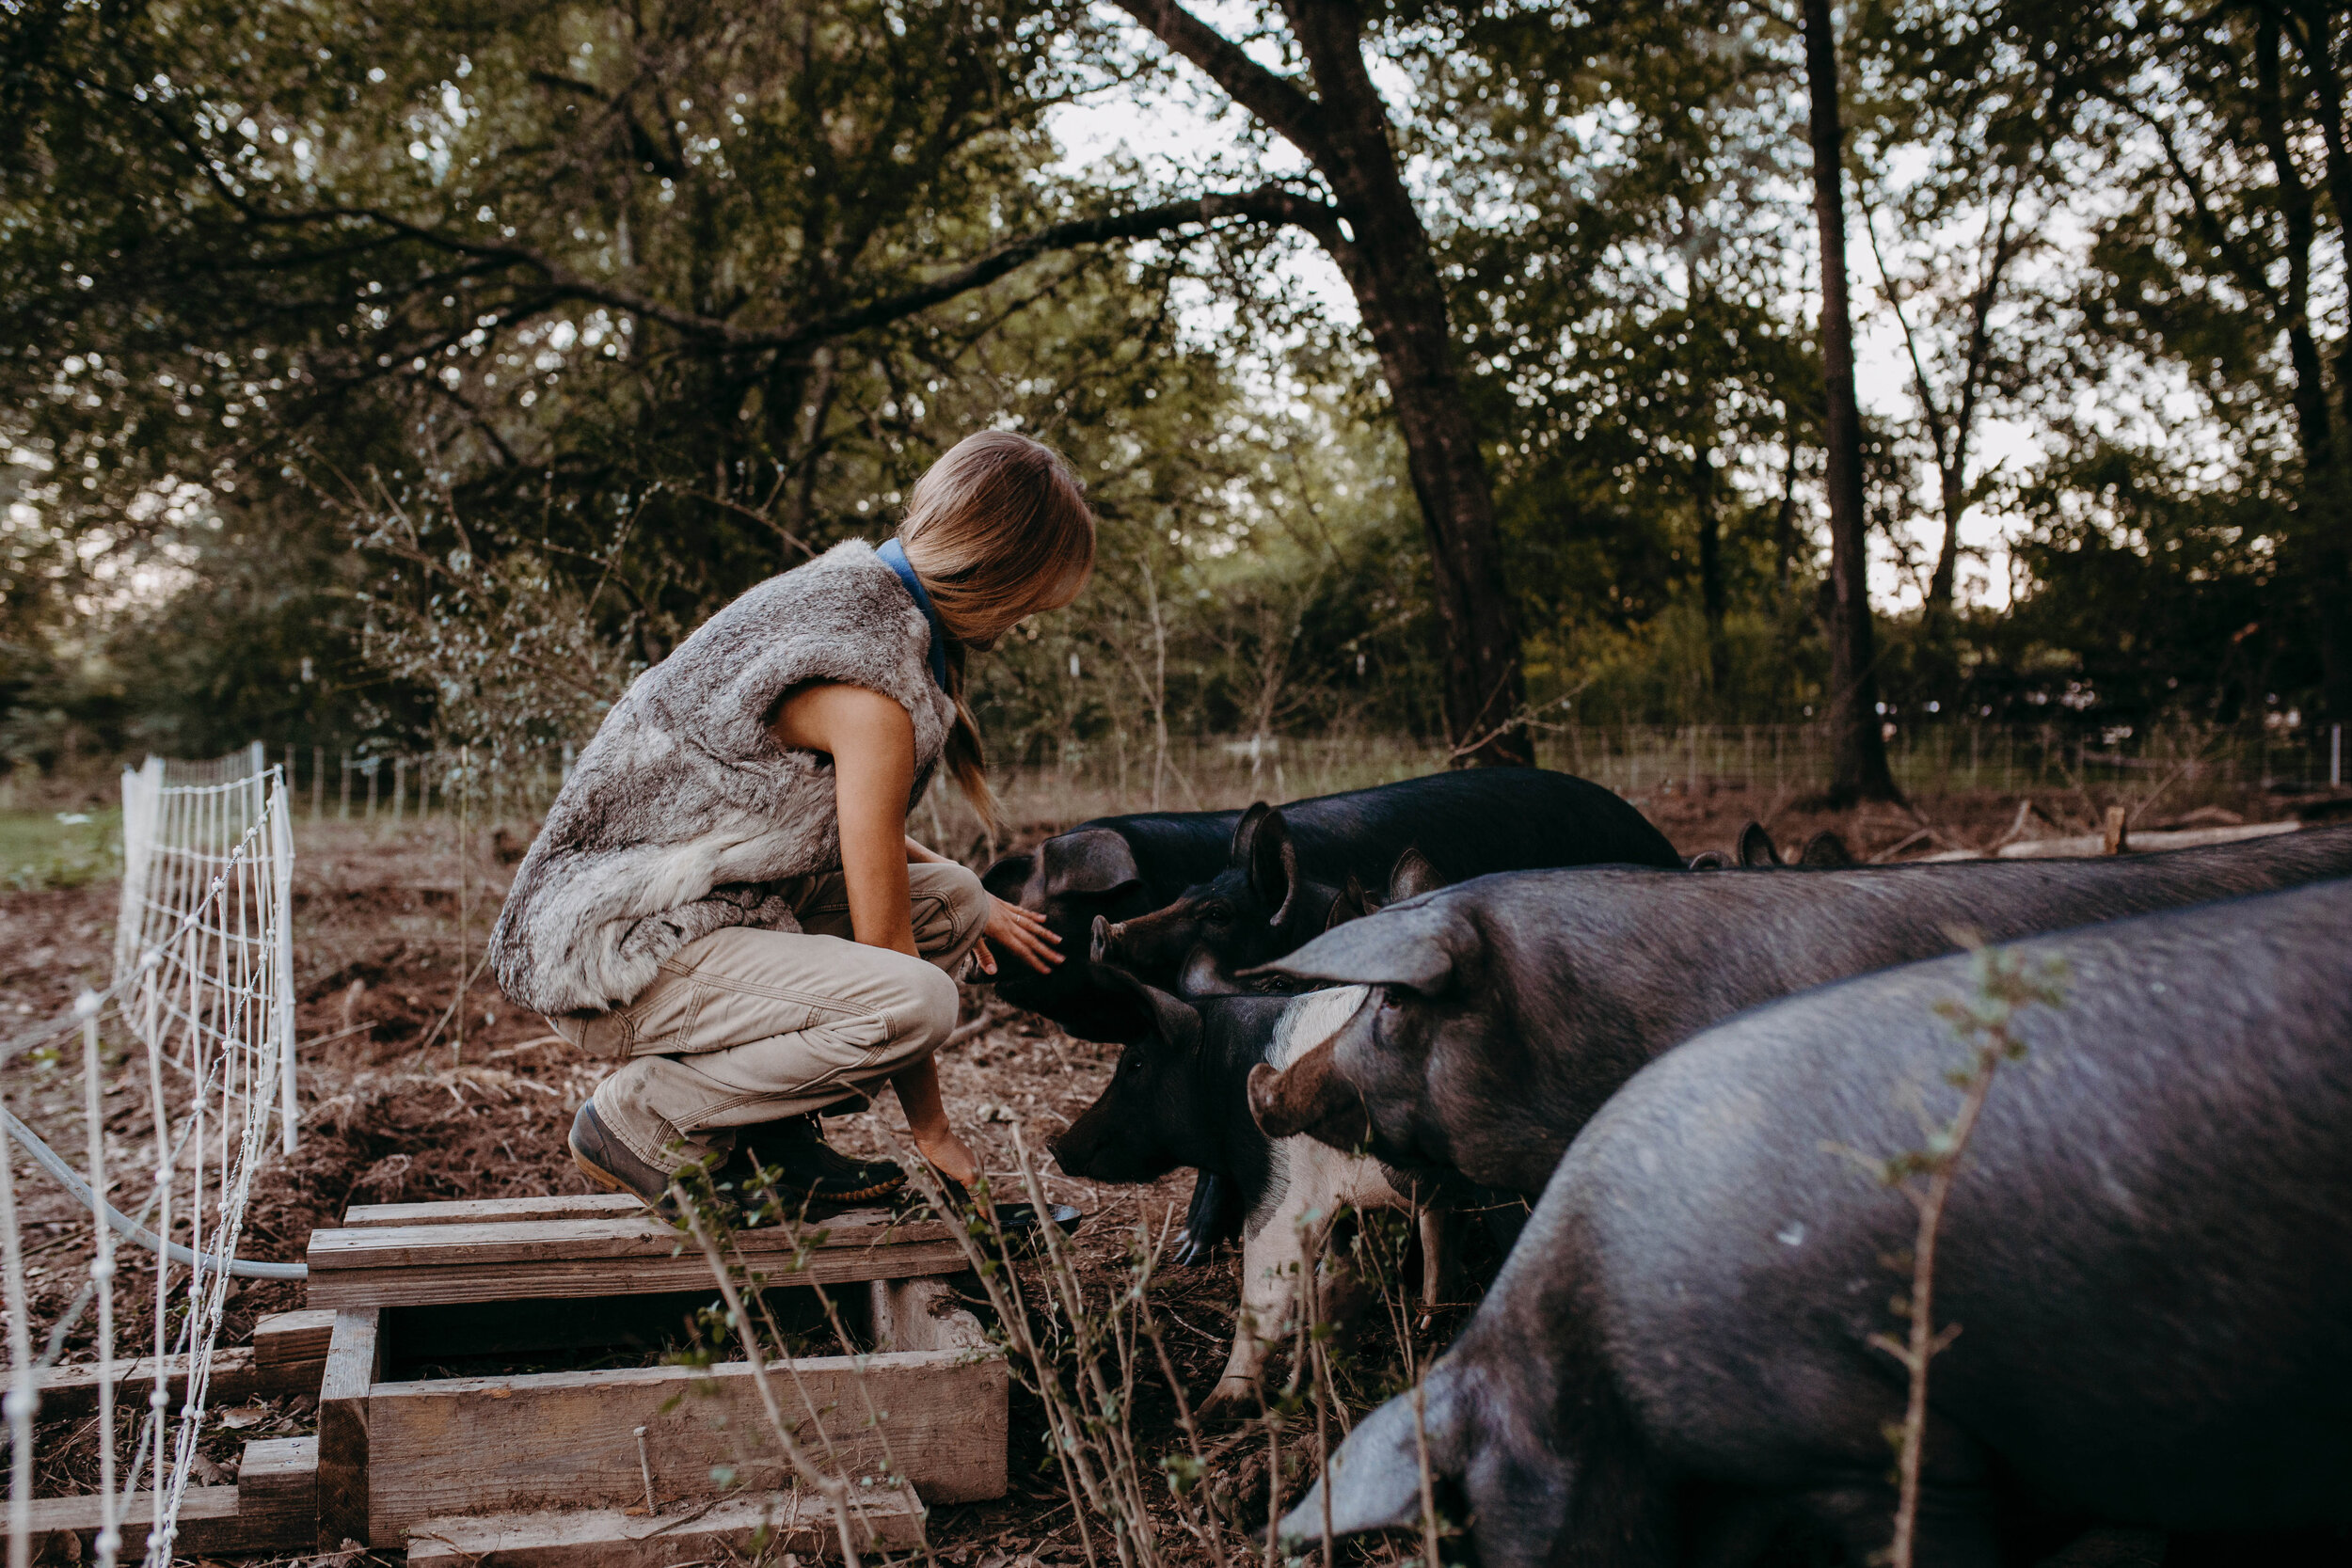 For a modern approach to the age-old science of rotational grazing, electric and portable fencing is used for the pasture-raised pigs at Sullifarm. They graze grasses throughout most of the year and eat acorns from under oak trees in the fall and early winter. (Photo by ThreeMoons Photography)